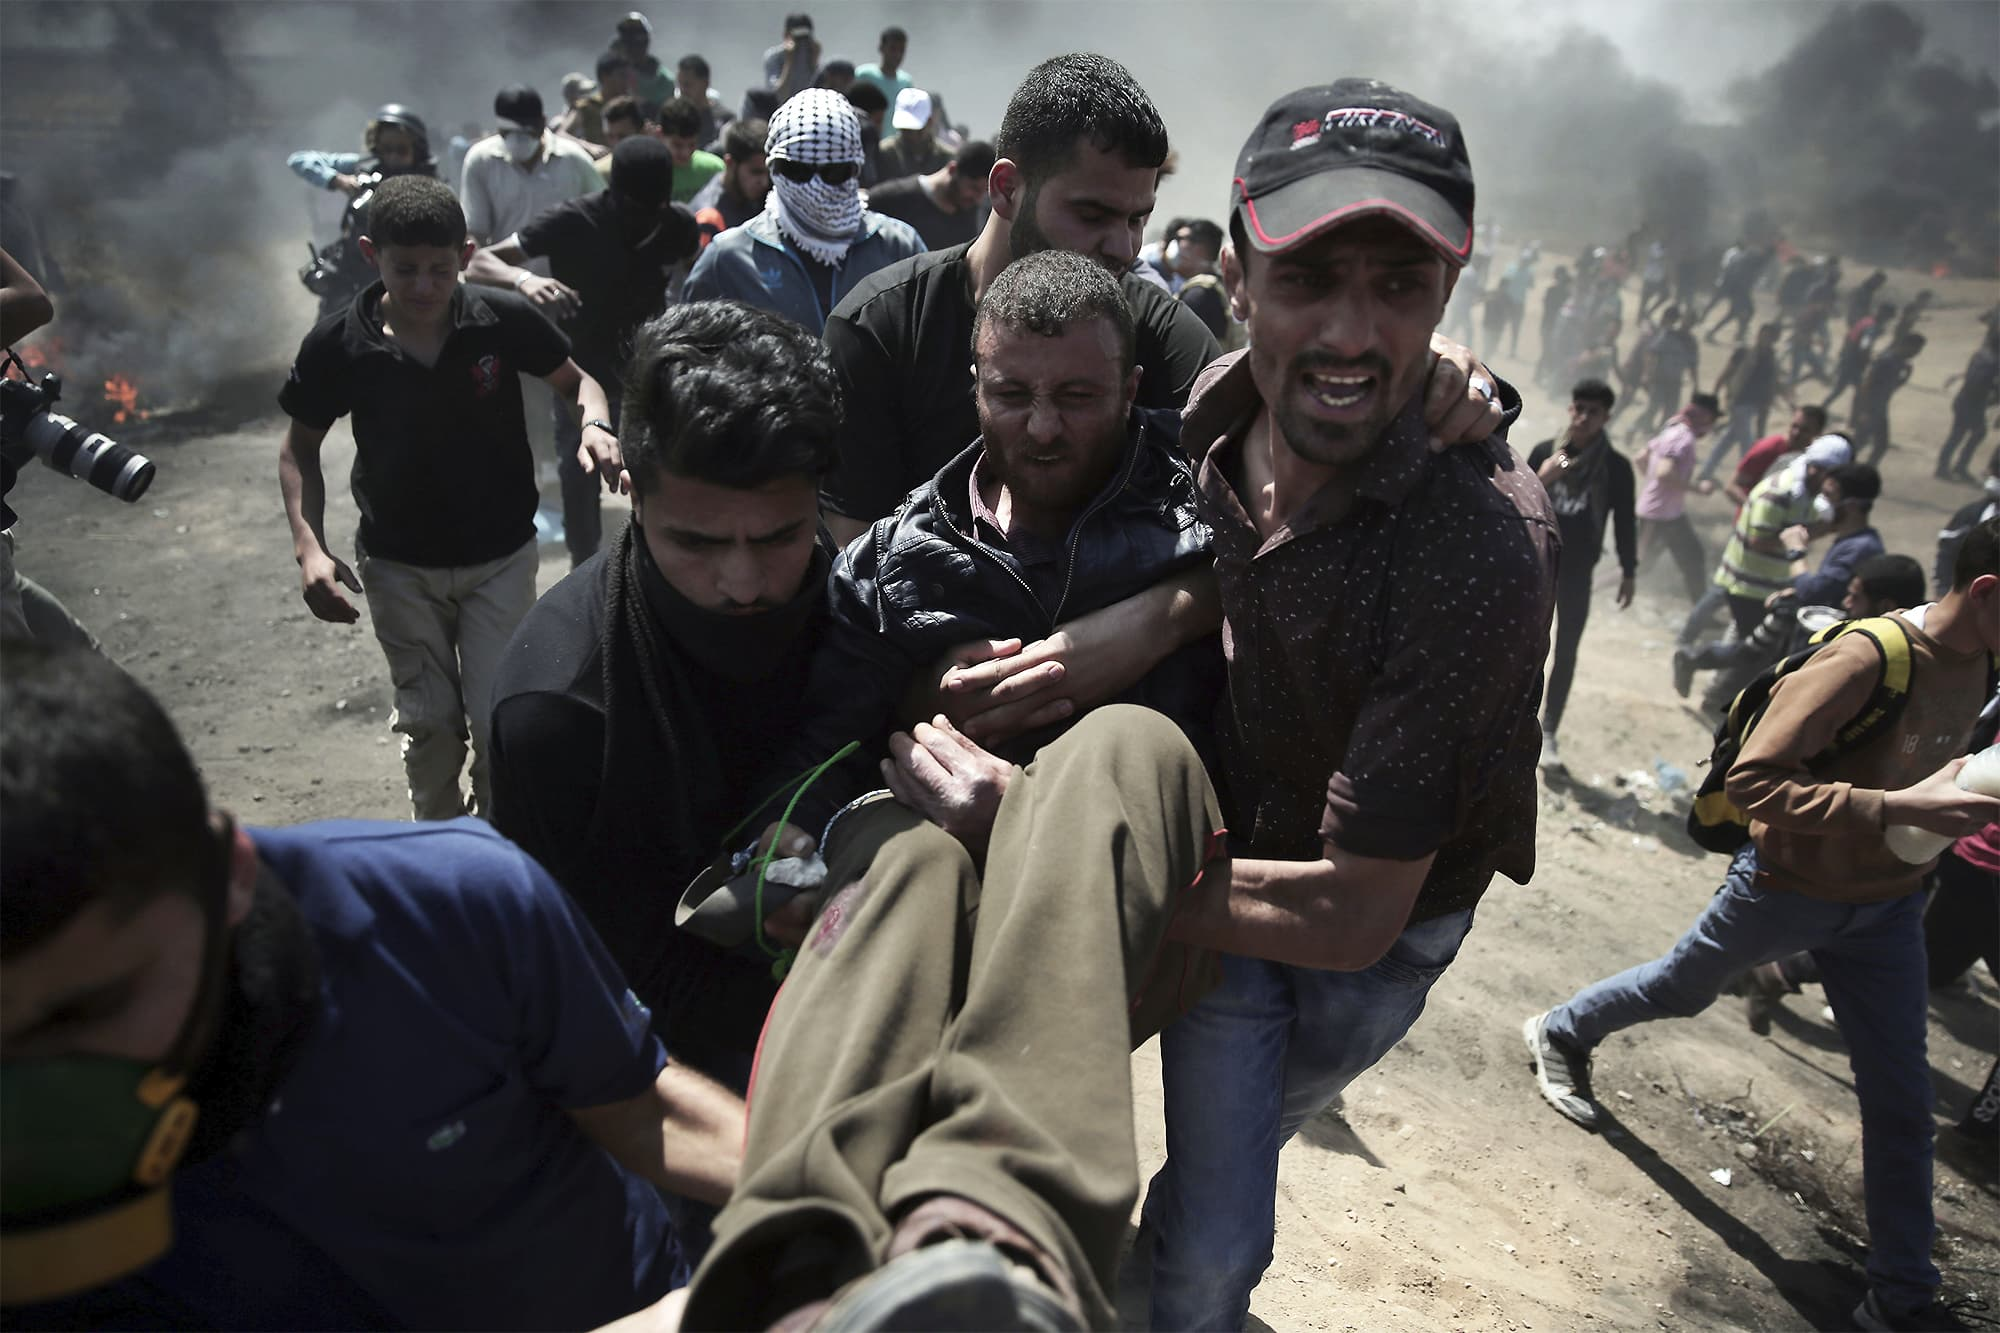 Palestinian protesters carry an injured man who was shot by Israeli troops during a protest at the Gaza Strip's border with Israel. ─ AP